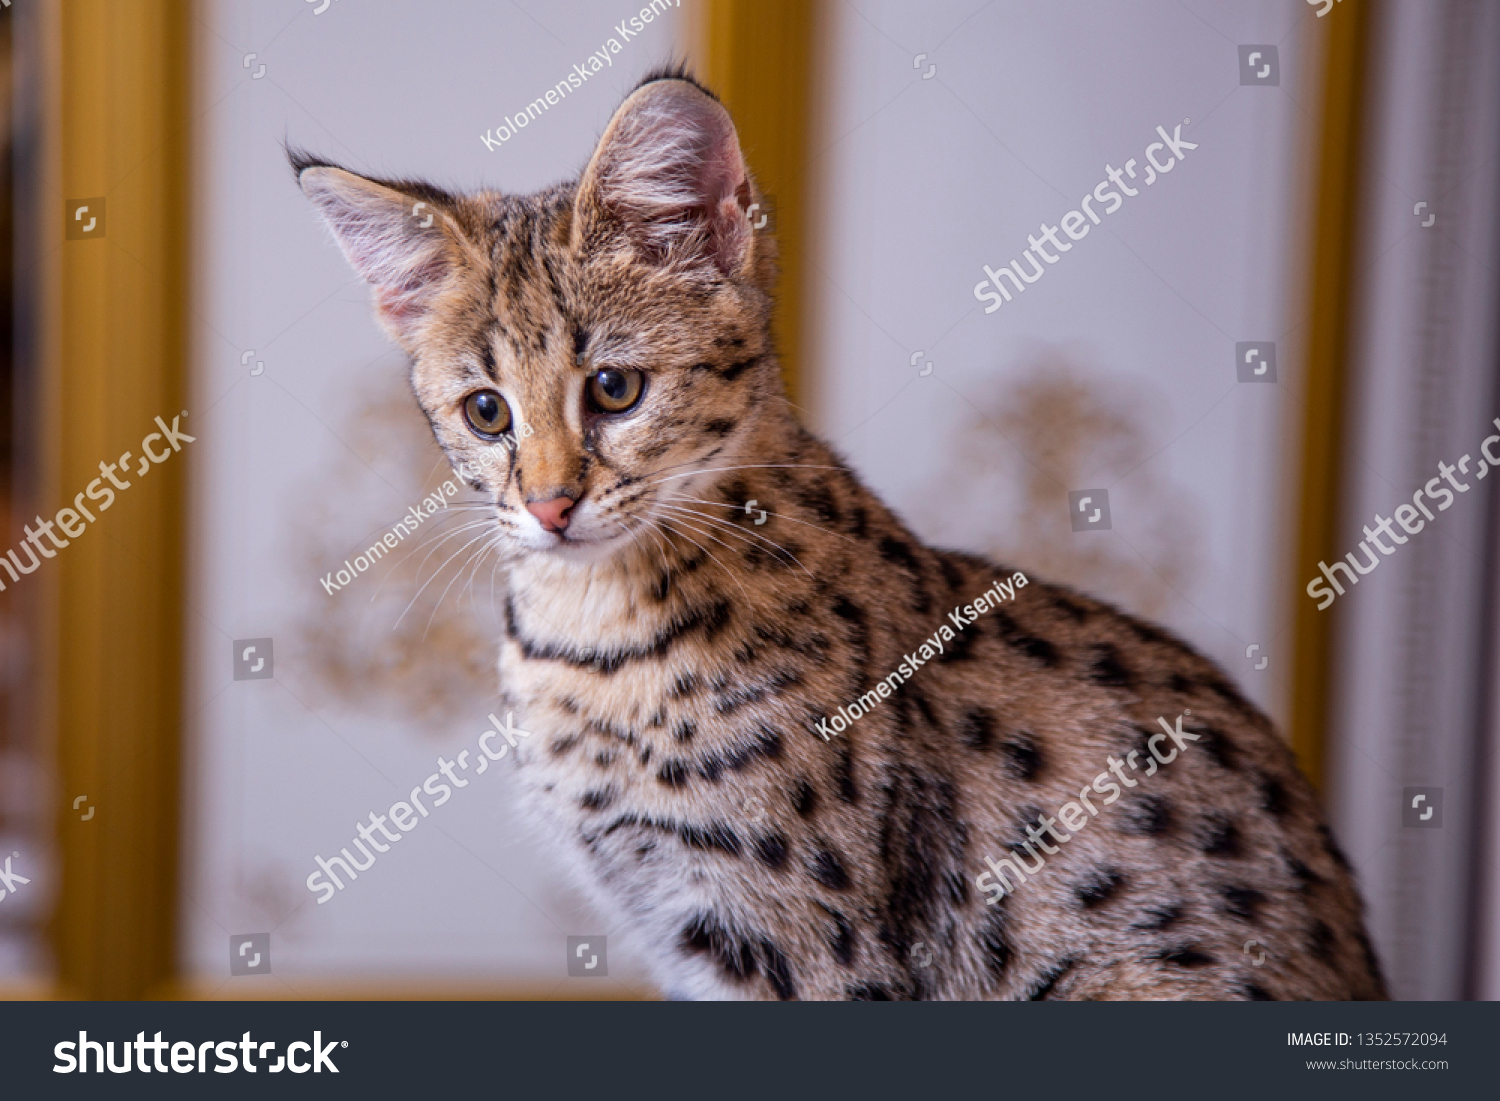 Cat Savannah F1 Sitting On Couch Stock Photo Edit Now 1352572094